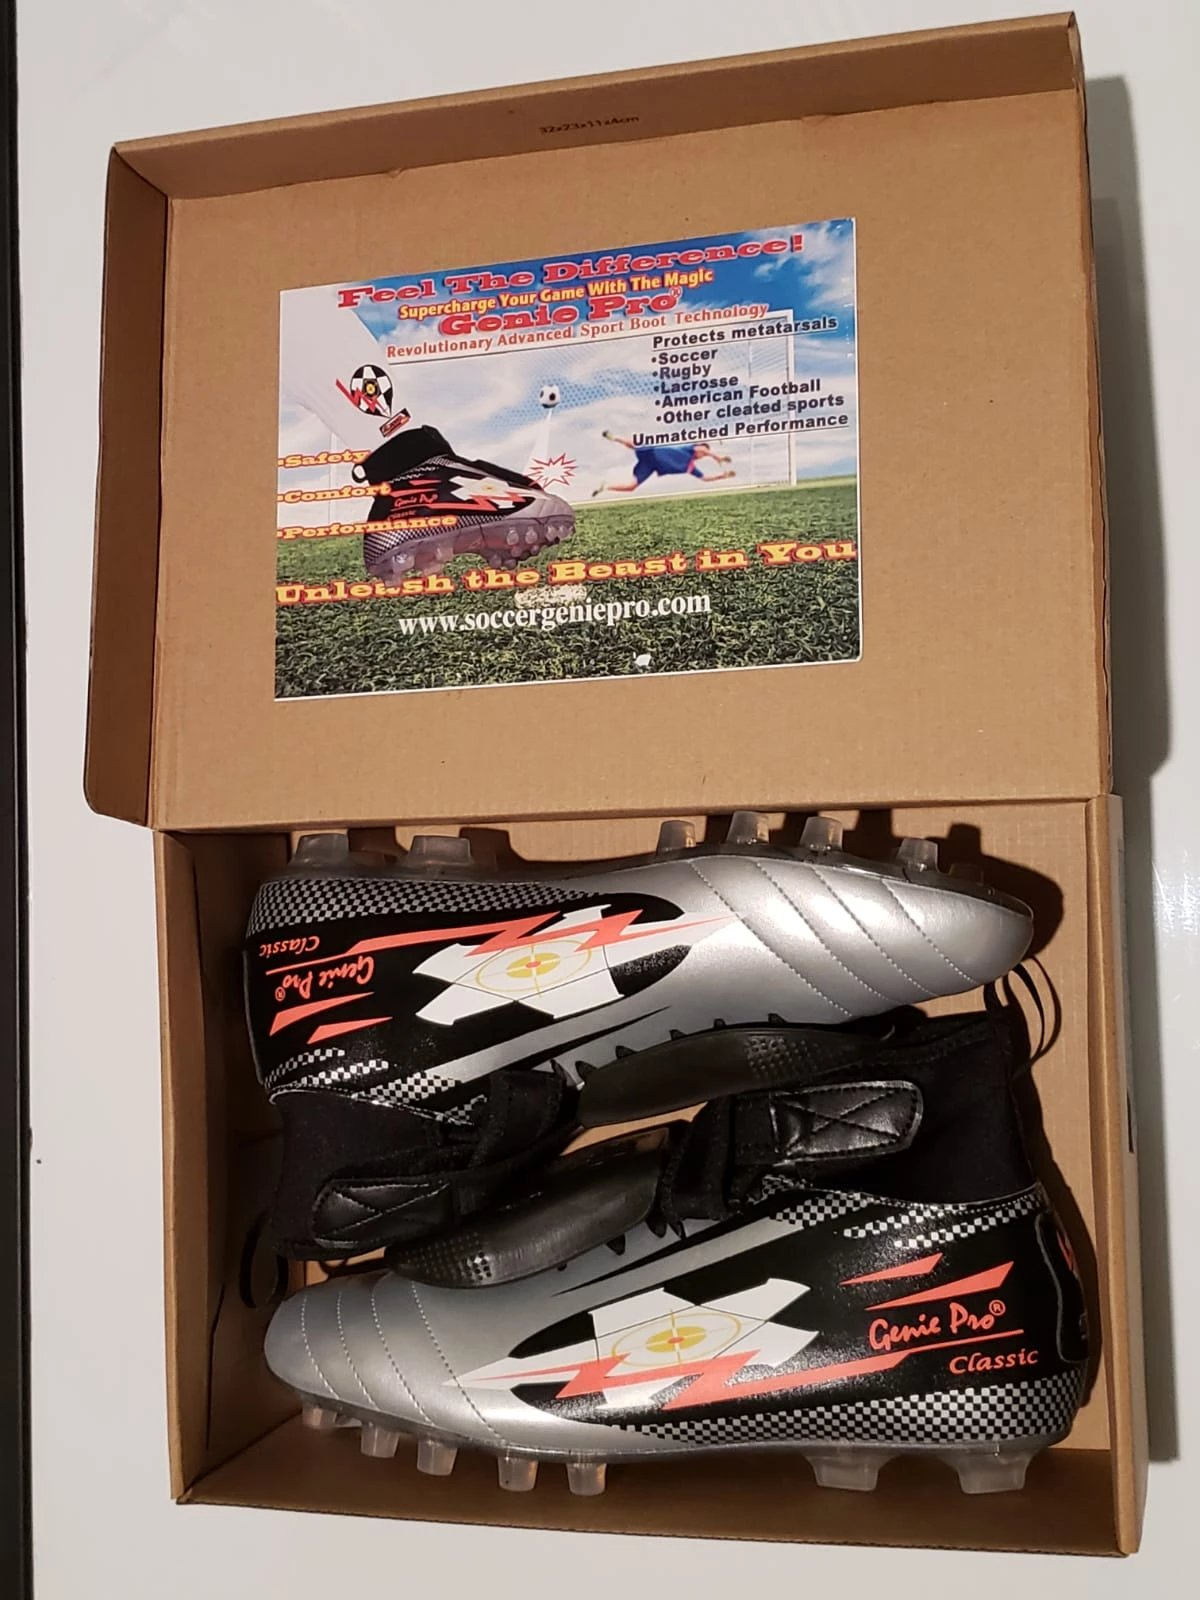 Genie Pro® High Performance Sport Cleats